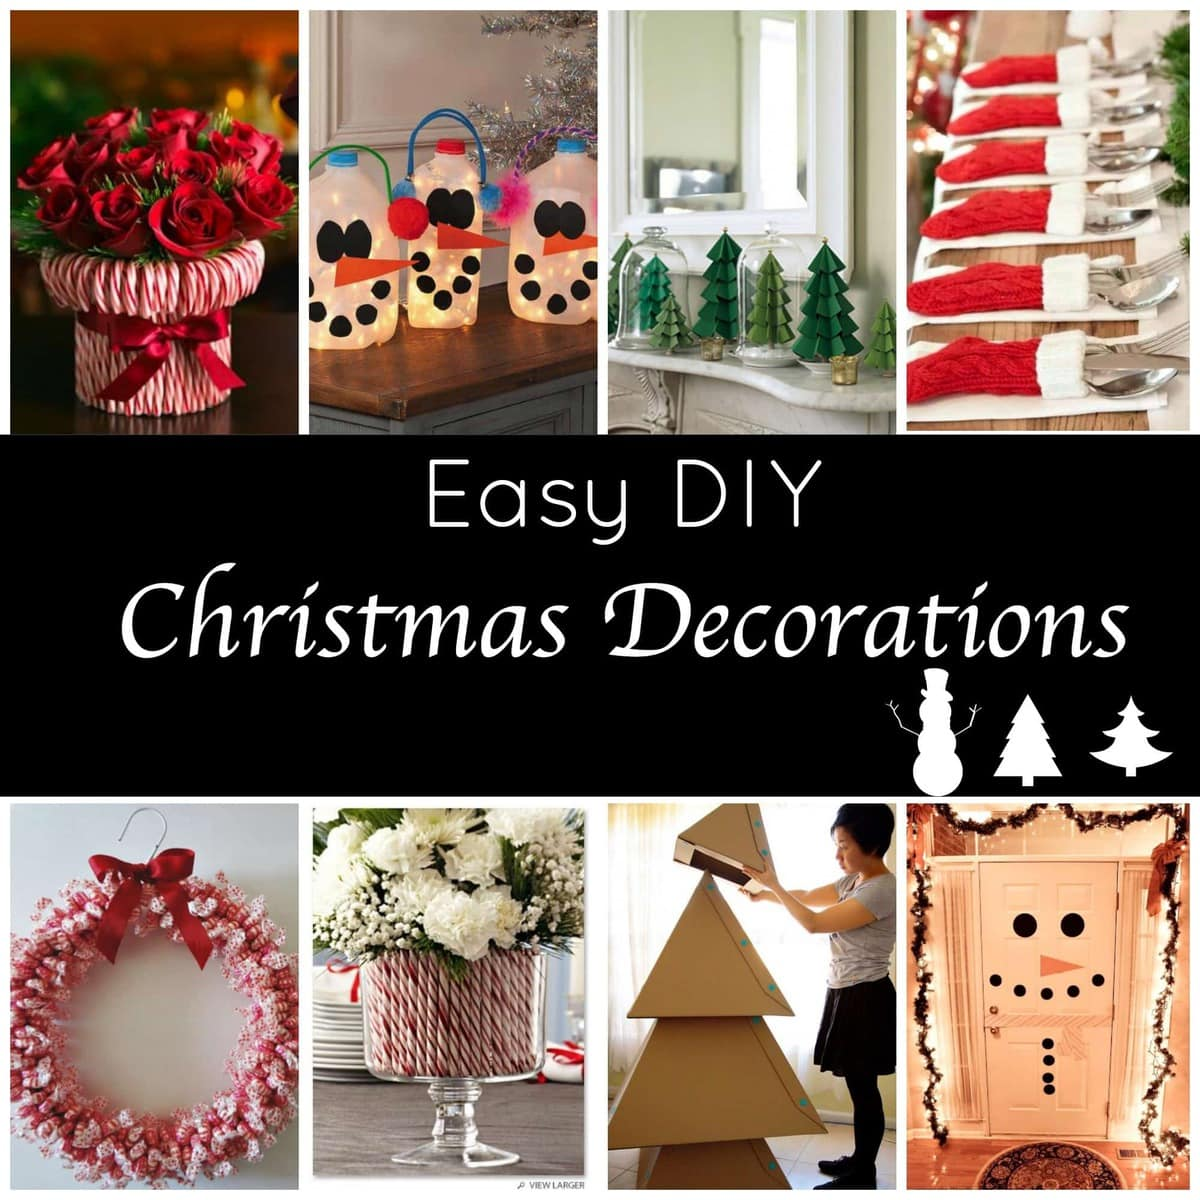 Simple Christmas Home Decorations: Cute And Easy DIY Holiday Decorations For A Festive Home